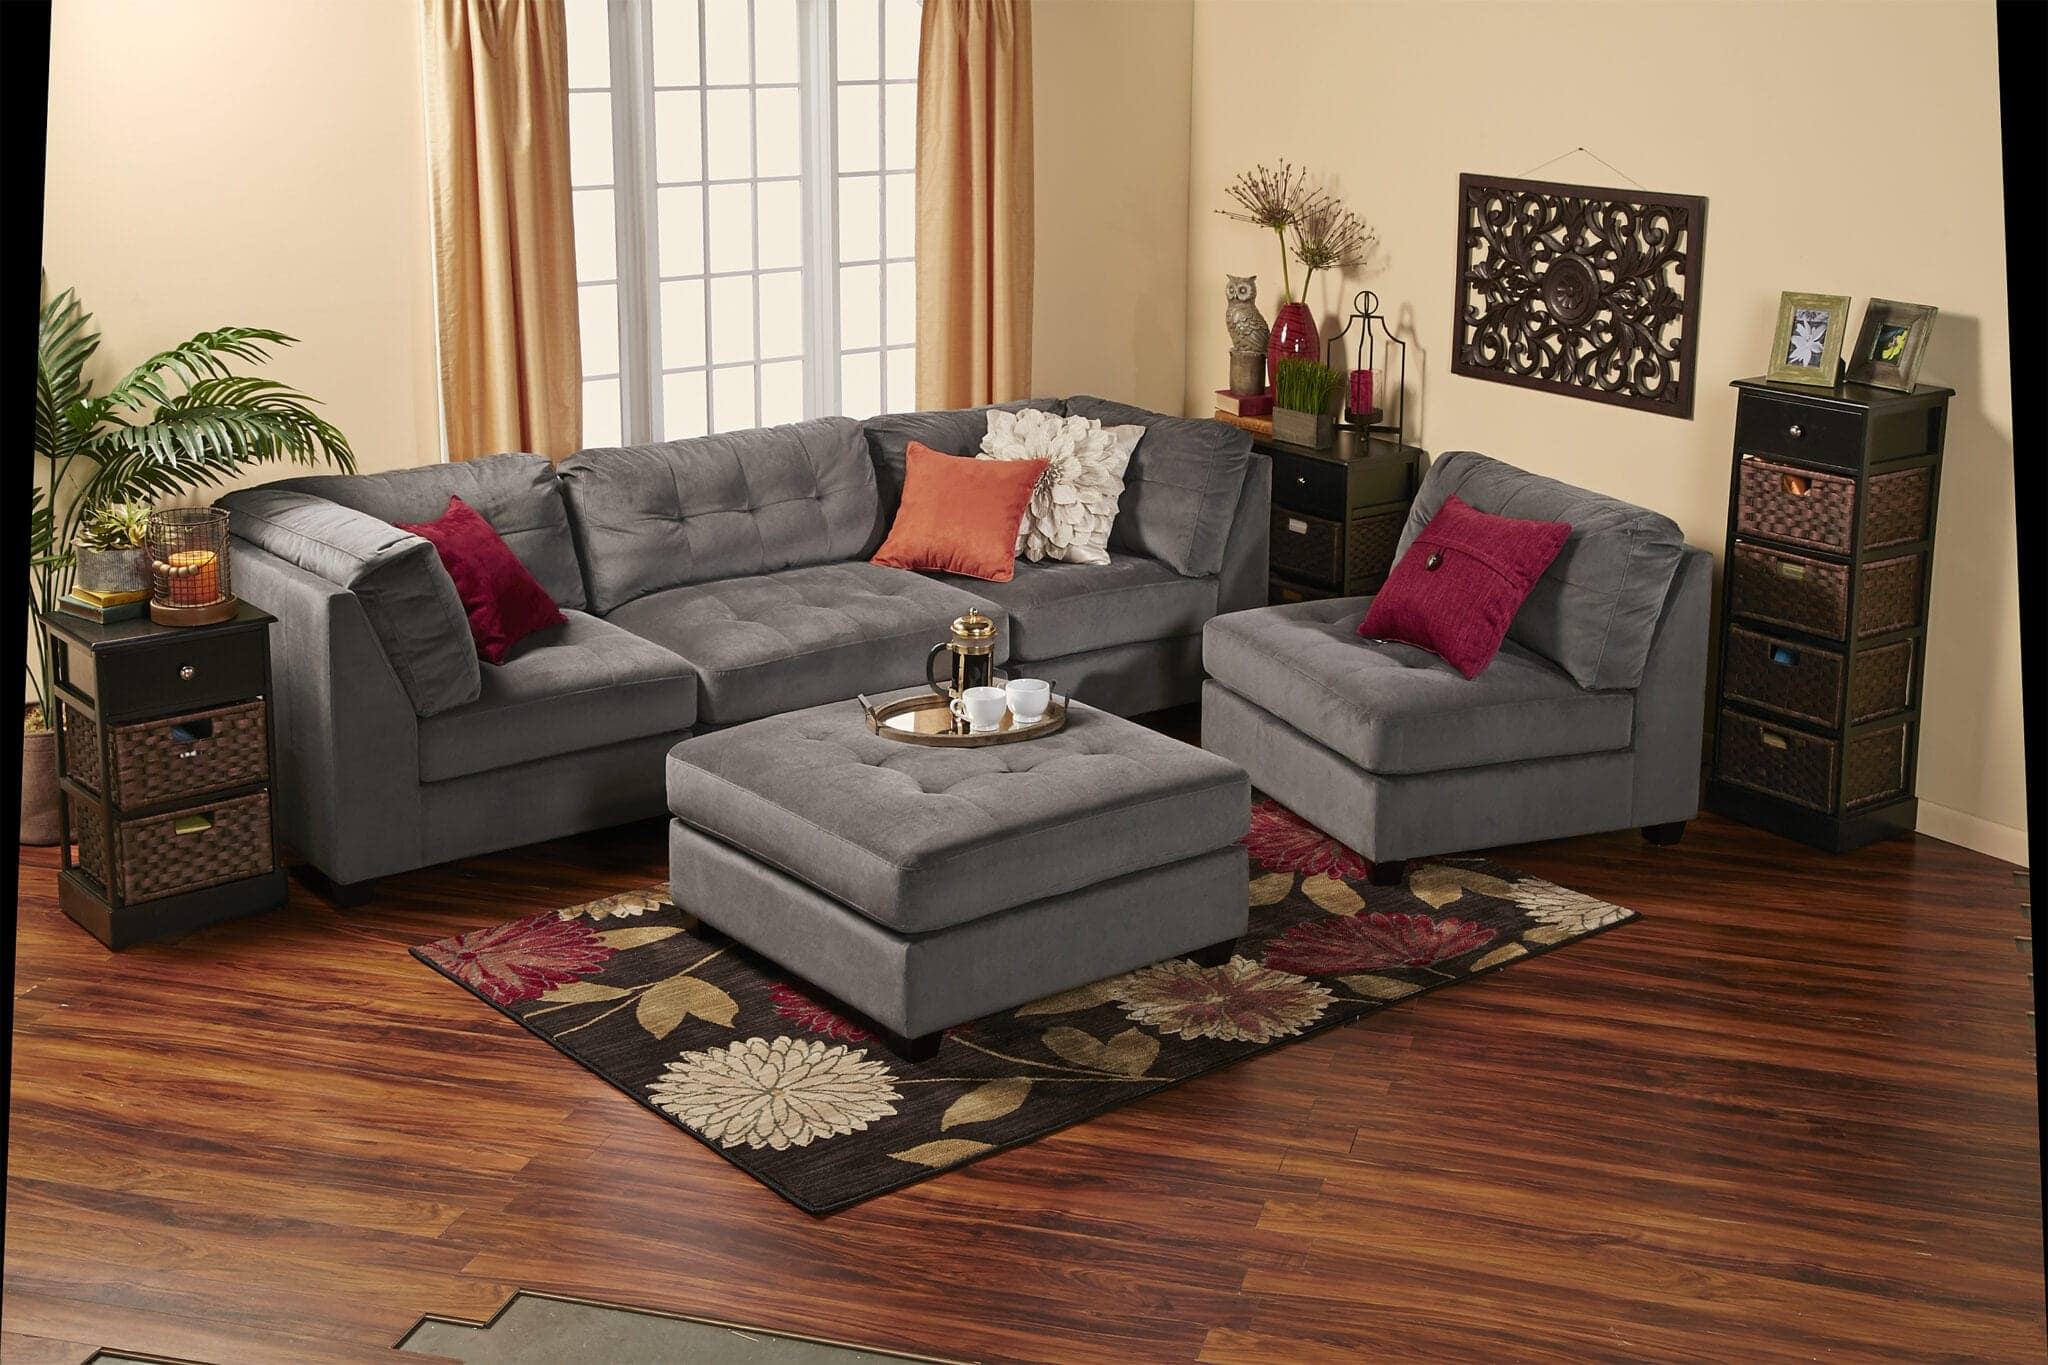 ashley furniture sofa sales restuff cushions toronto fred meyer truckload event - couches under $300 ...